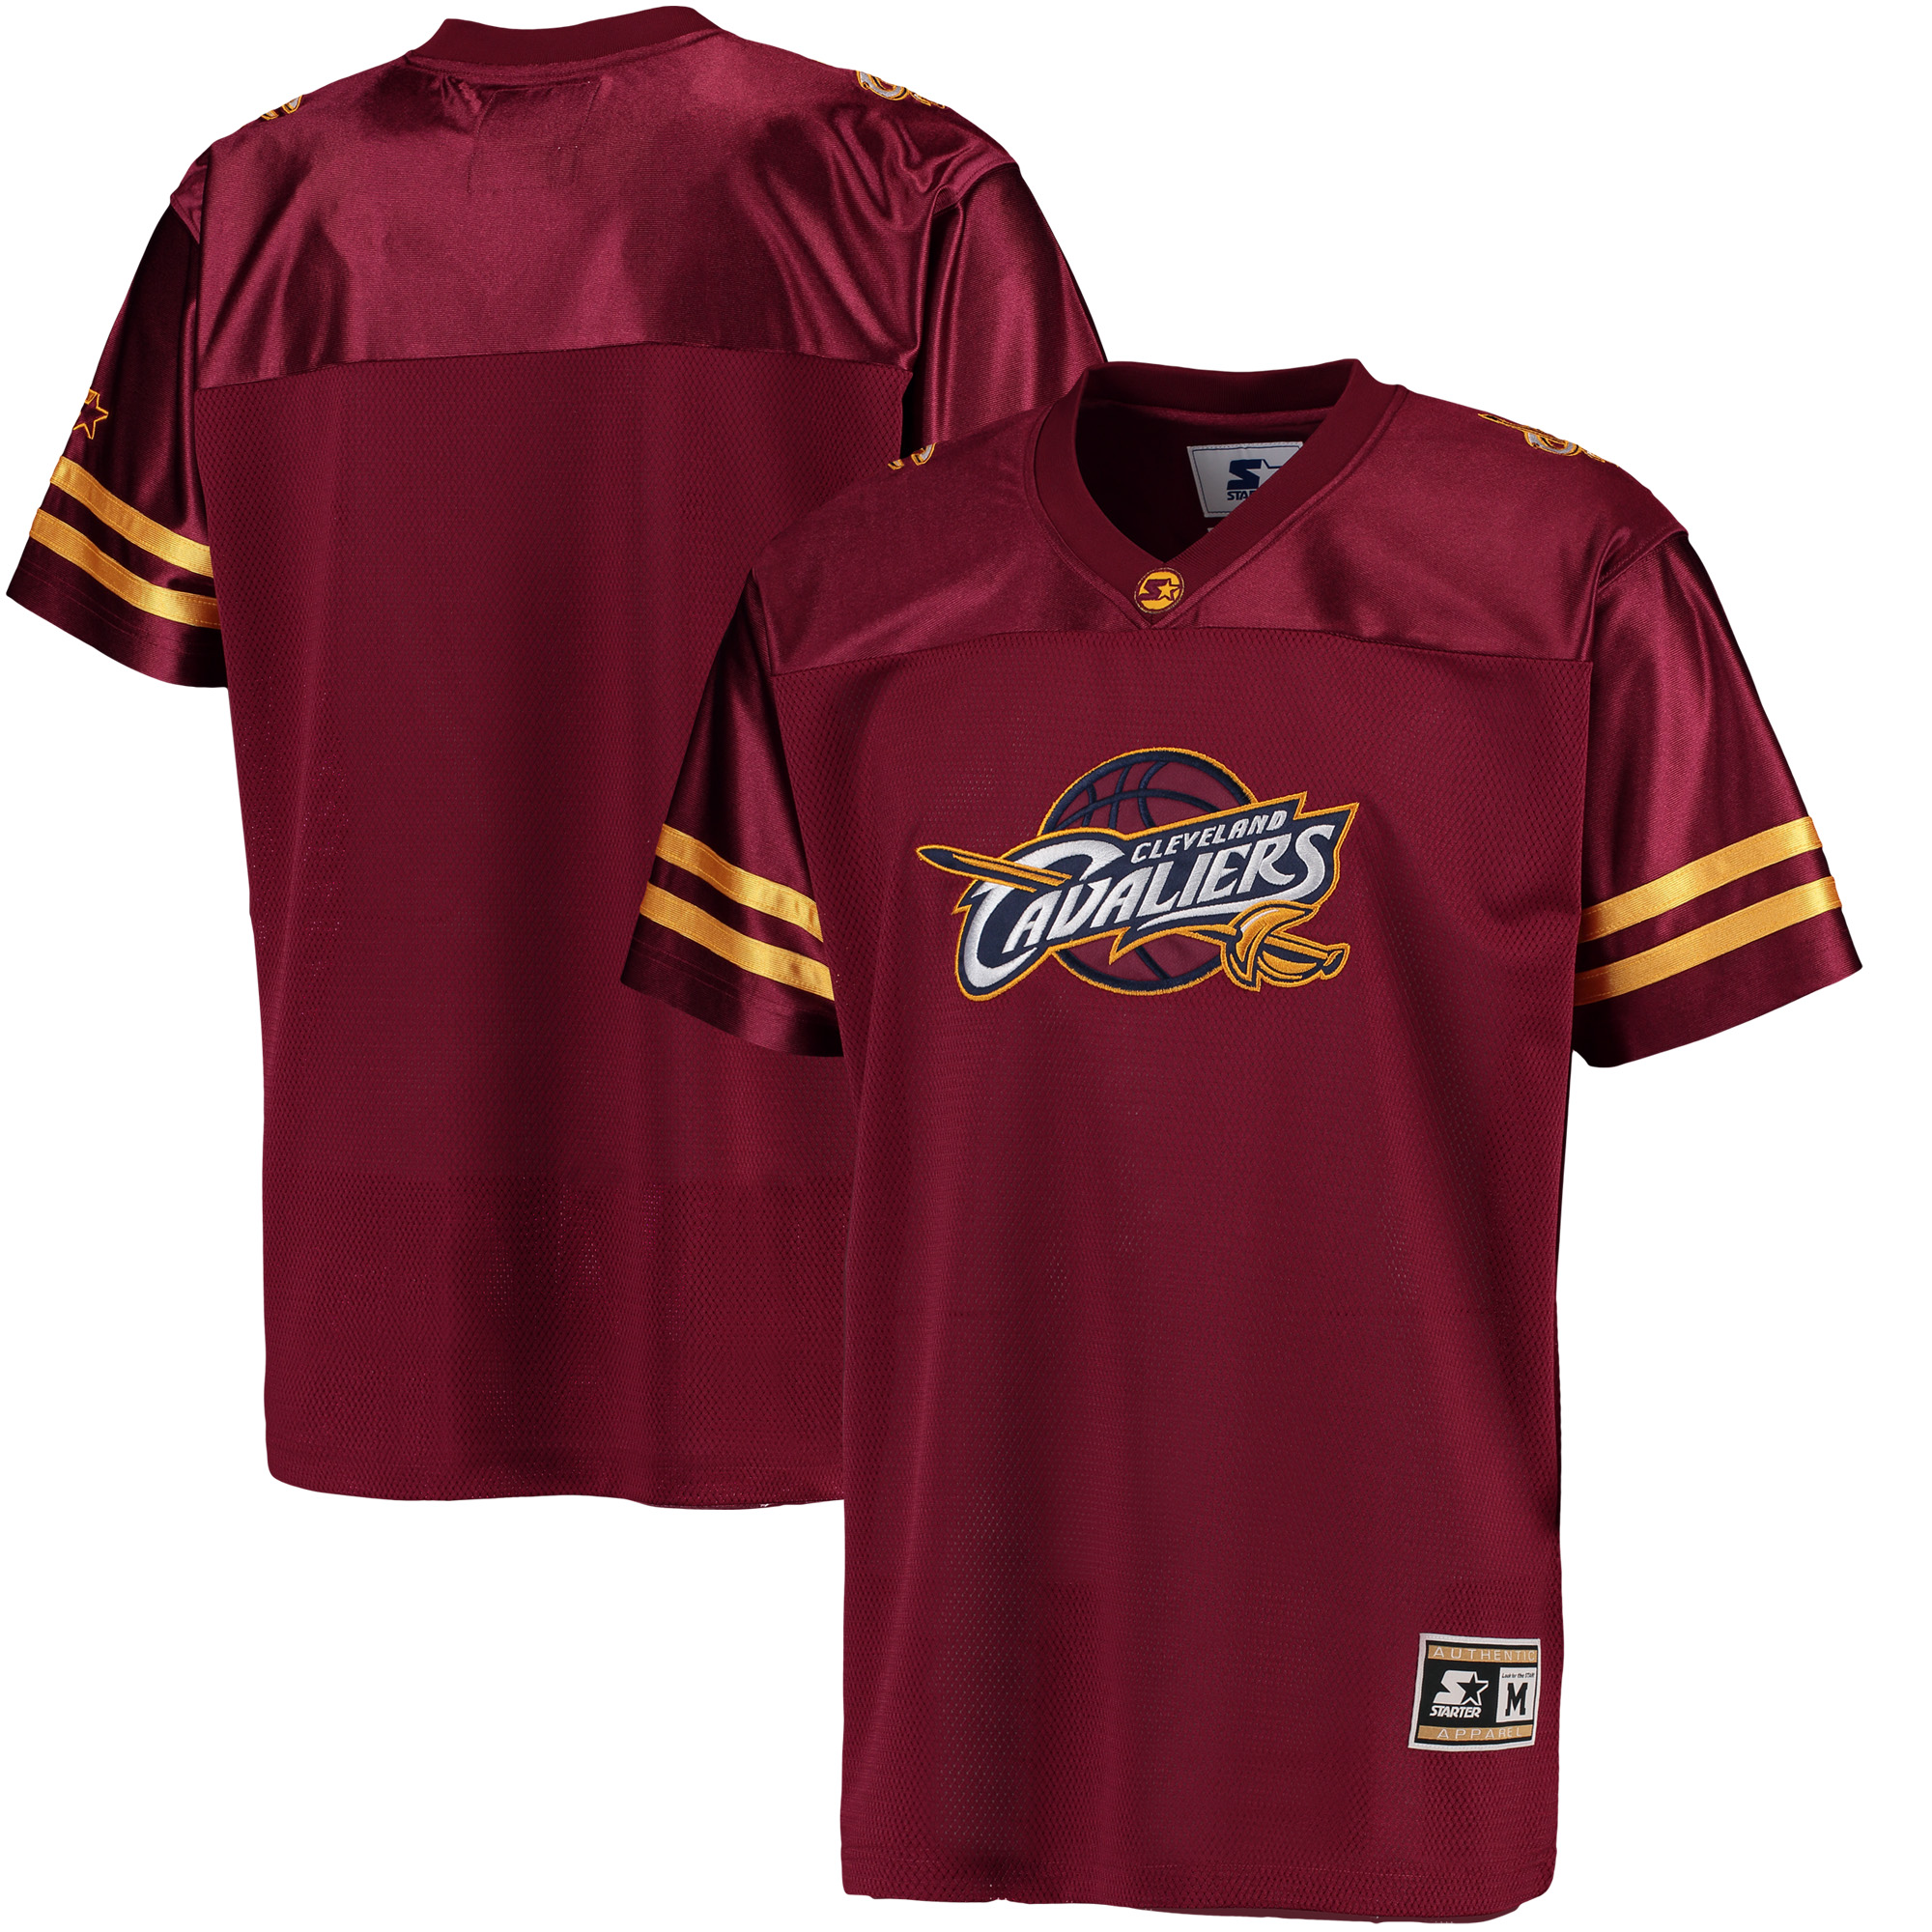 Cleveland Cavaliers G-III Sports by Carl Banks Football Jersey - Wine